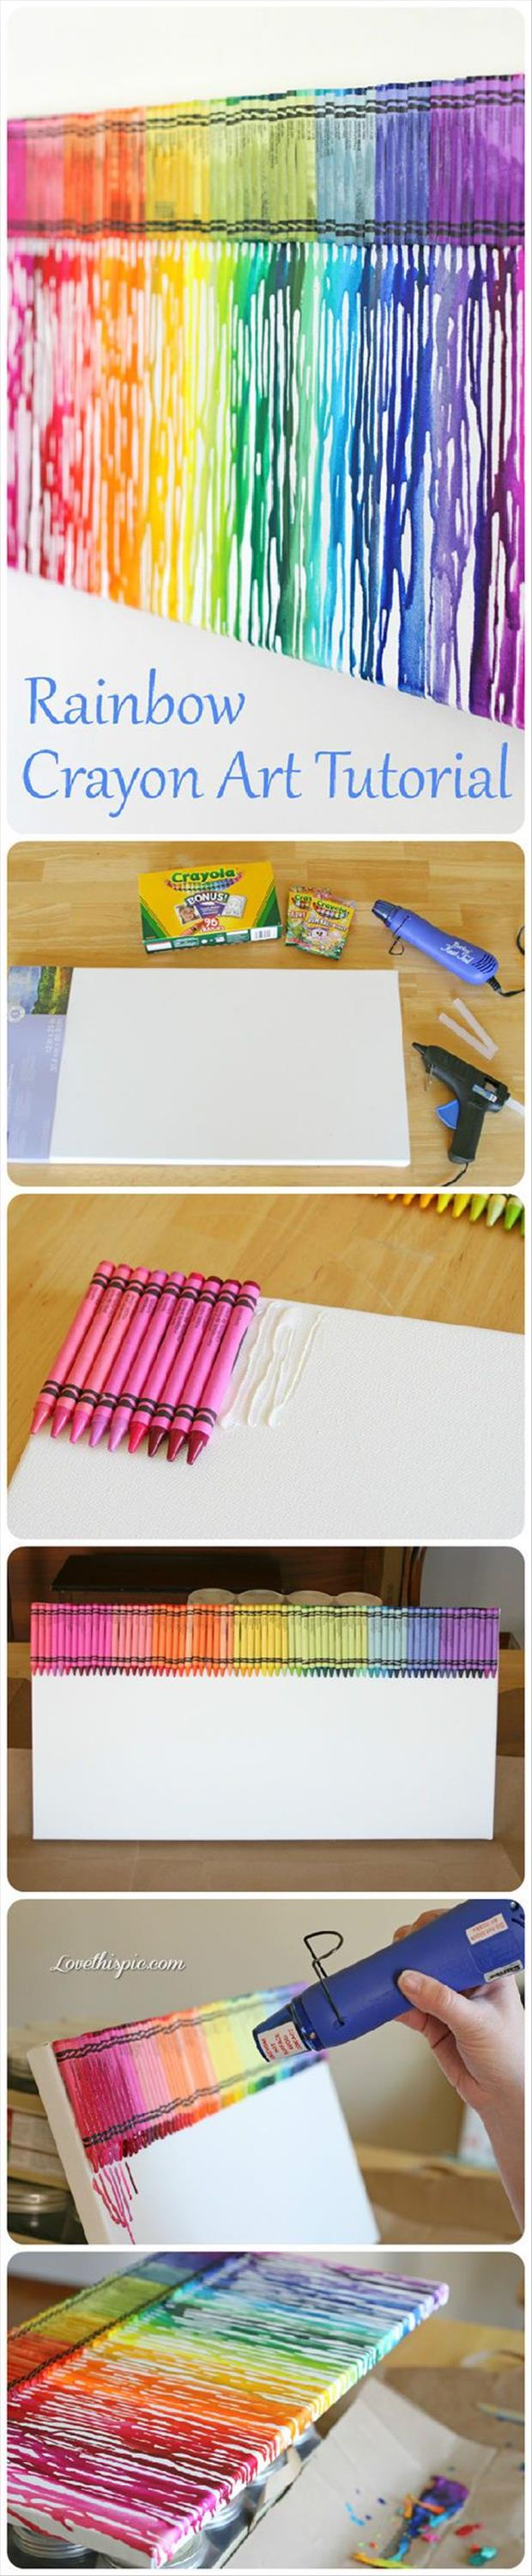 do it yourself craft ideas (6)